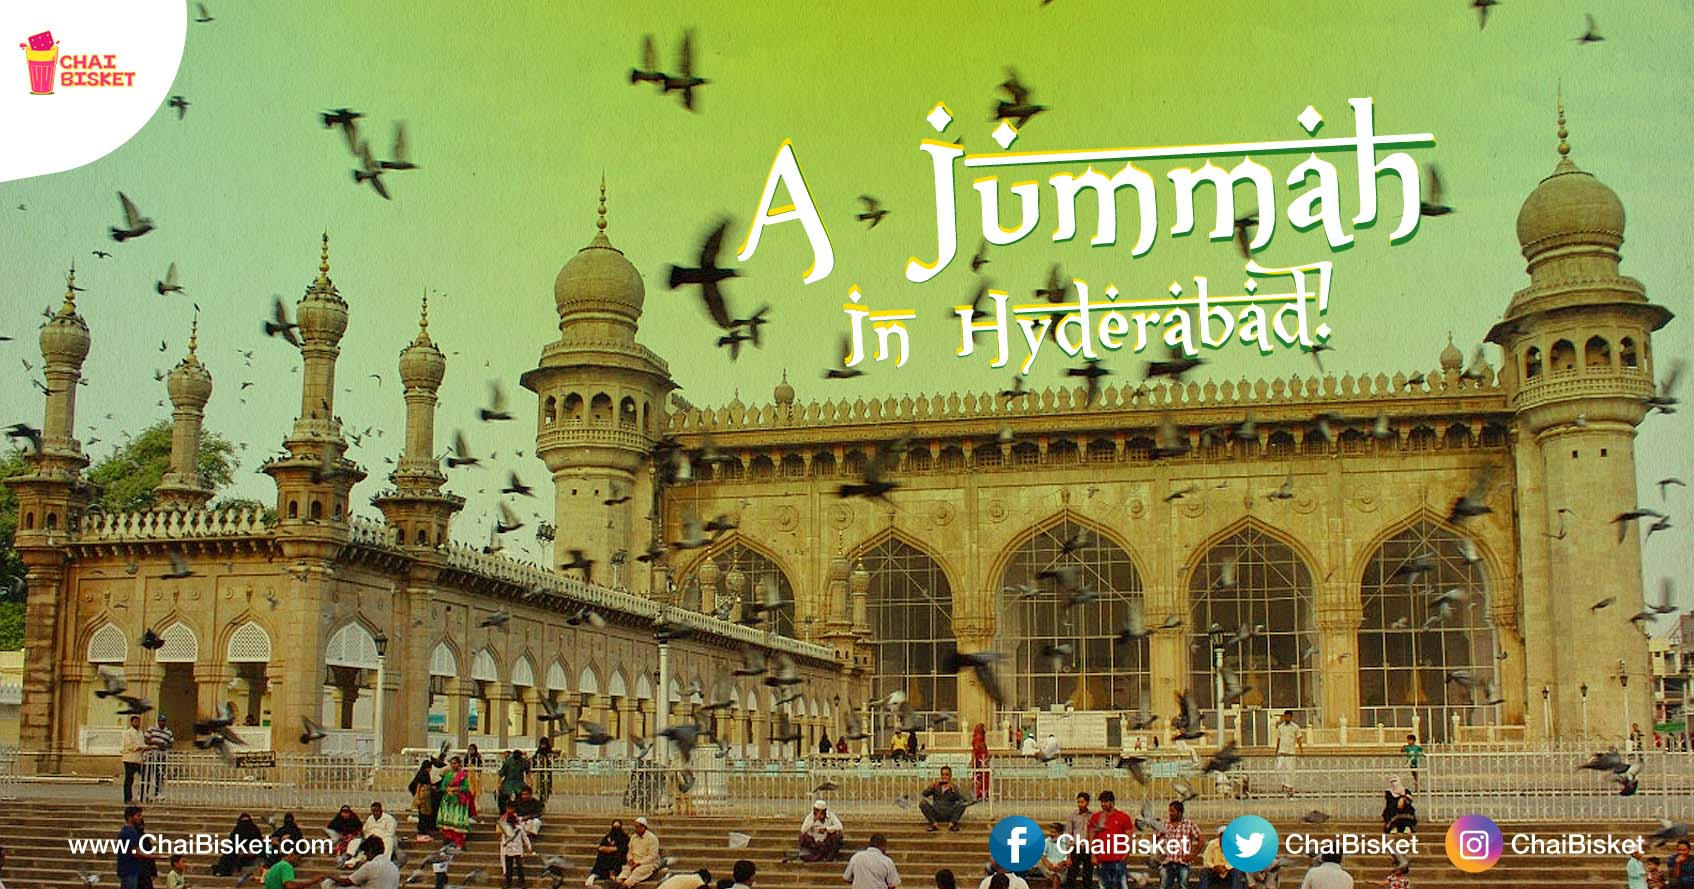 tourist spots of hyderabad